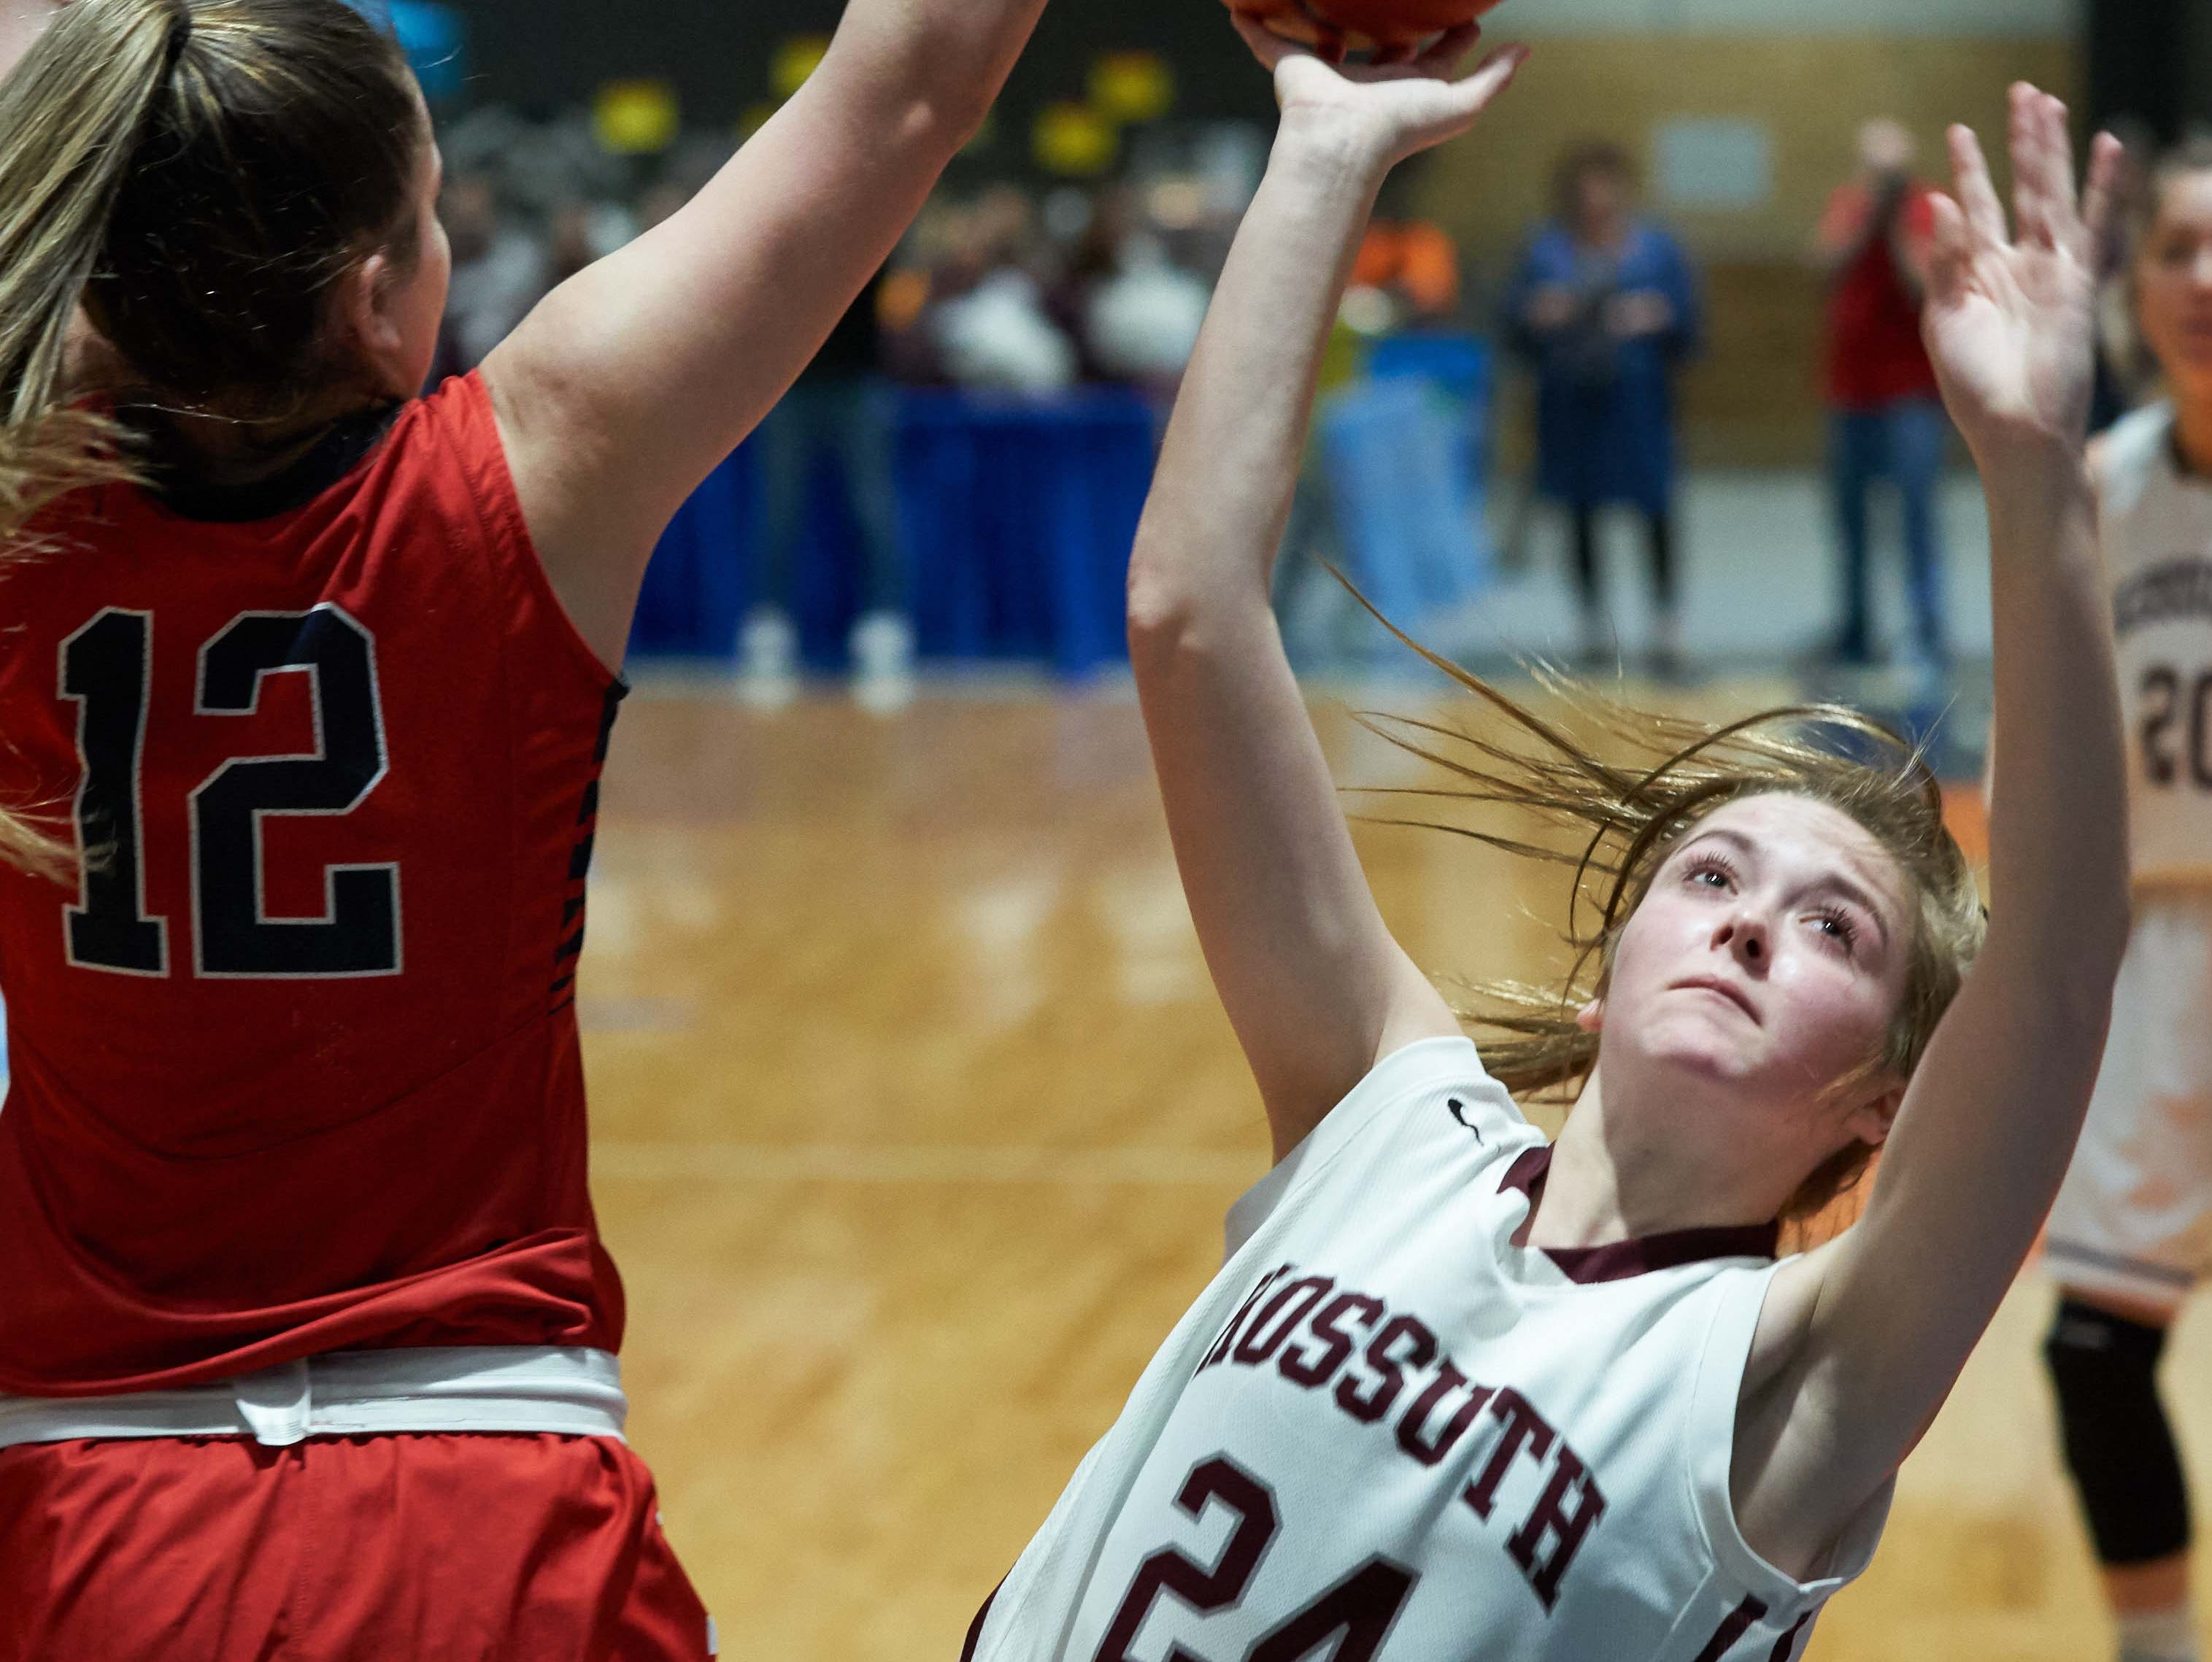 Kossuth's Regan Bobo (24) shoots against Belmont during the MHSAA 3A Girls Basketball Championship Finals held at the Mississippi Coliseum in Jackson, MS, Saturday March 9th, 2019.(Bob Smith)